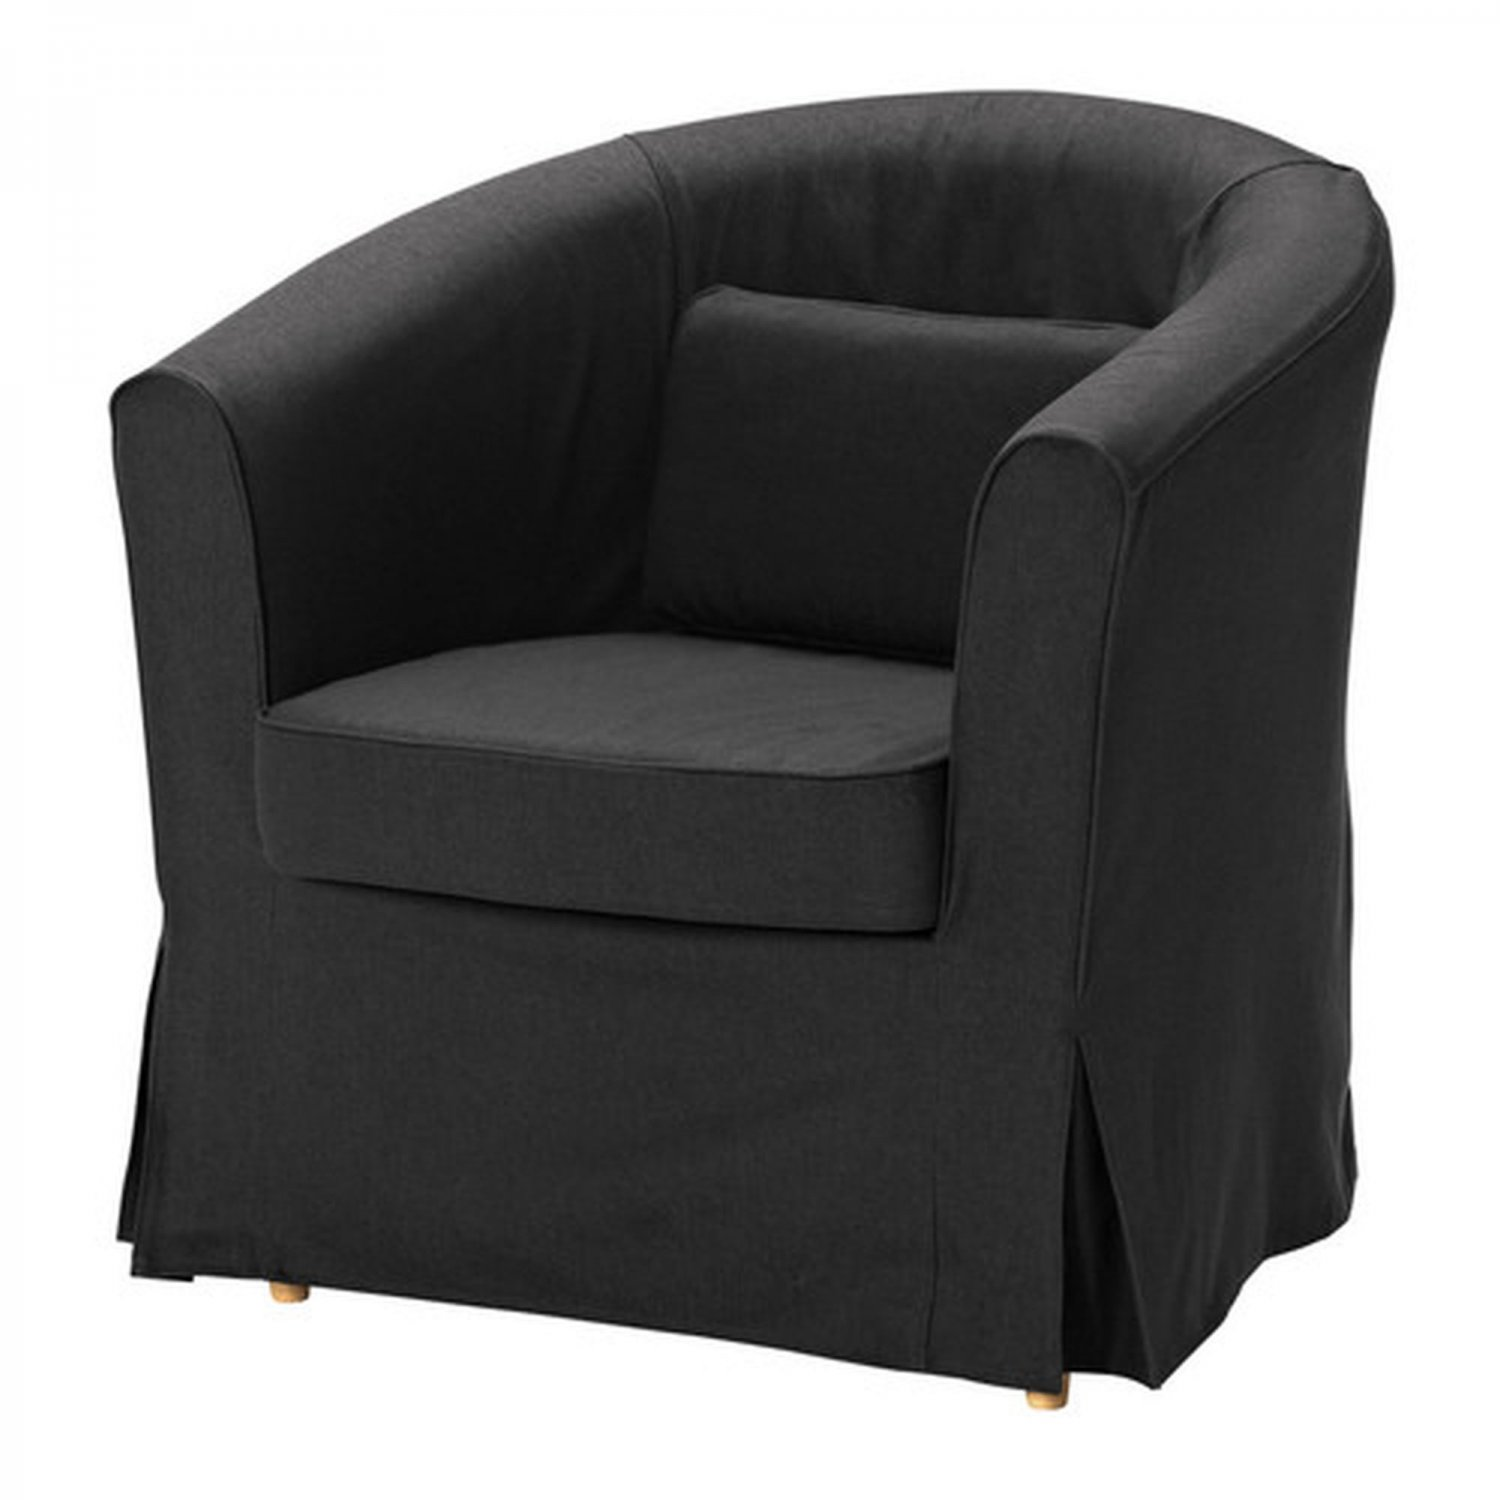 ikea ektorp tullsta armchair slipcover chair cover idemo black bezug. Black Bedroom Furniture Sets. Home Design Ideas